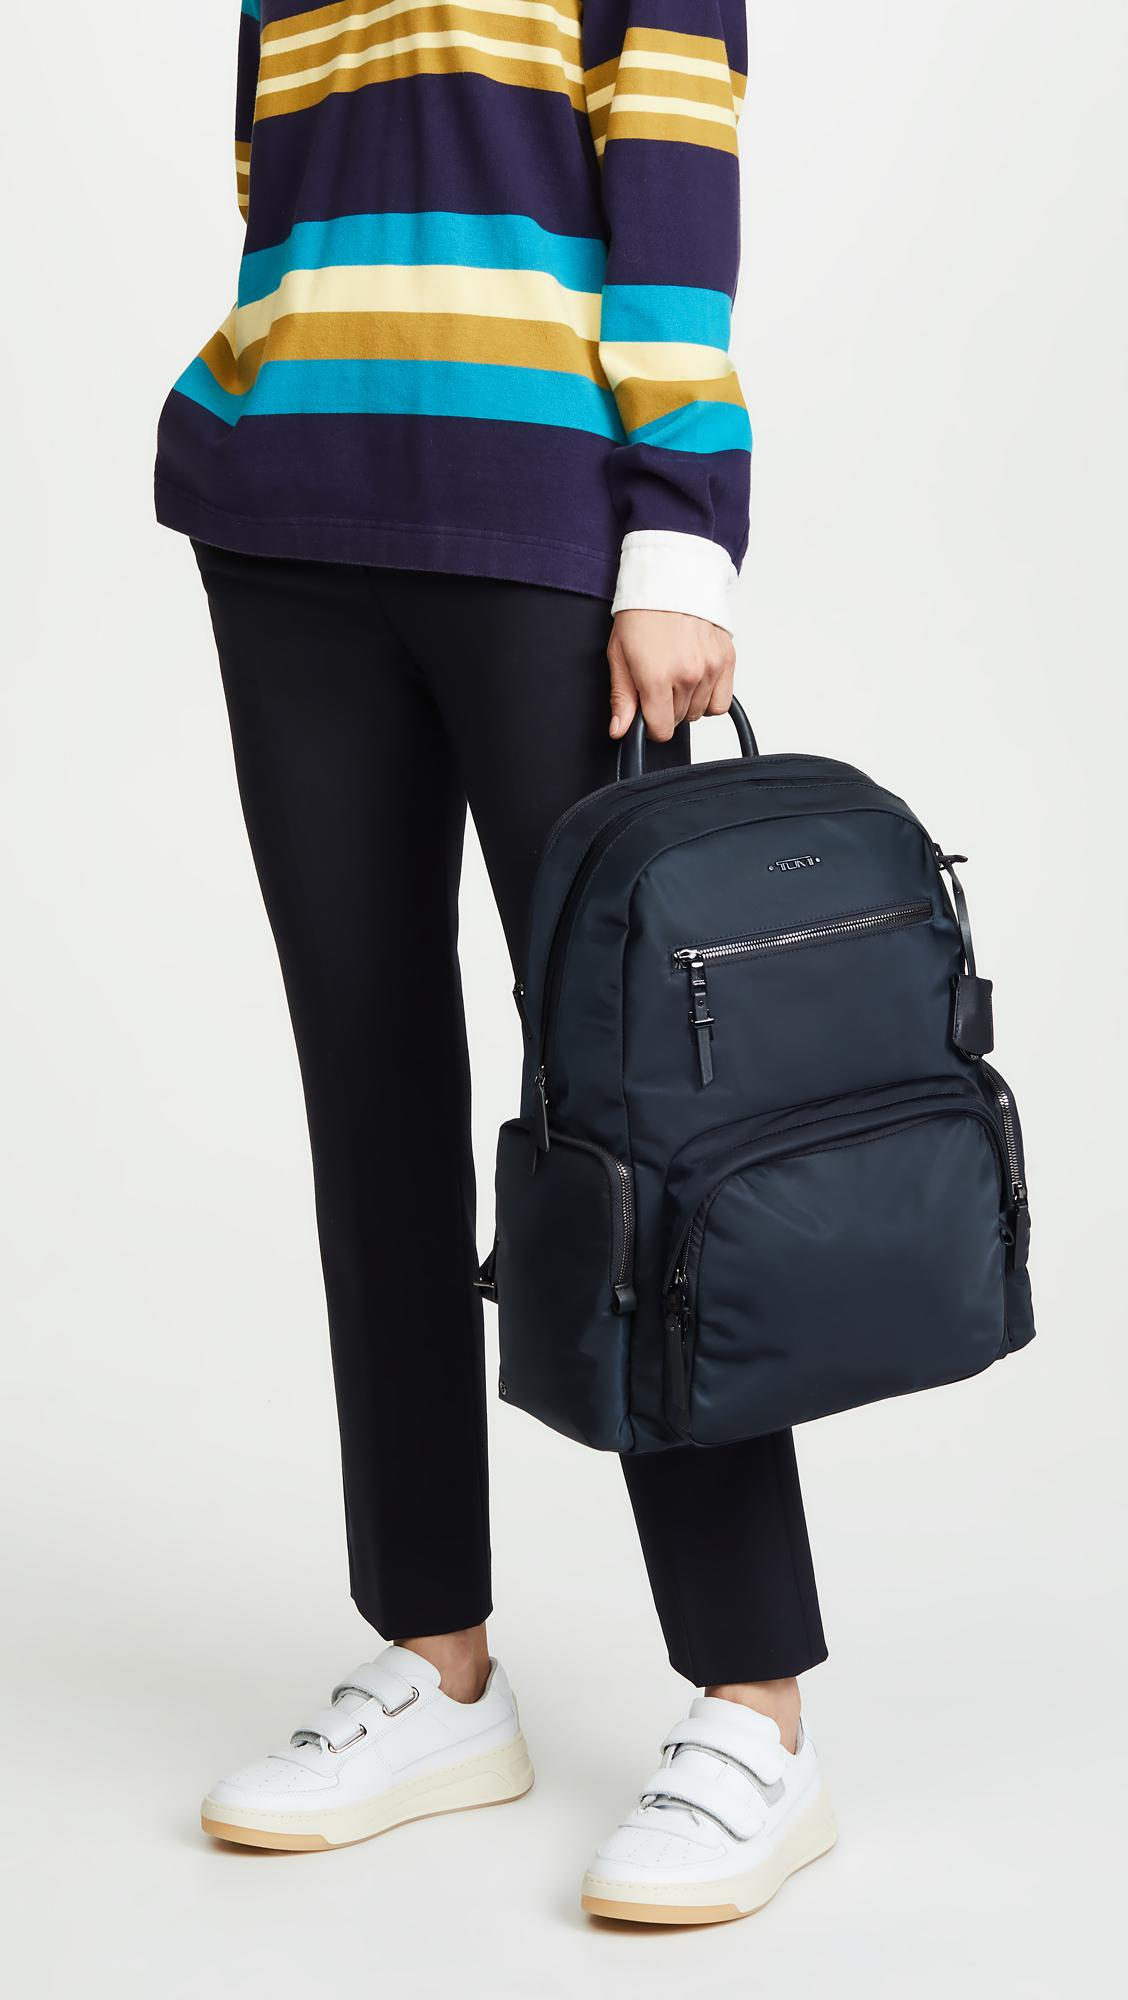 de0e88ac5 Tumi Voyageur Carson Backpack in Blue - Lyst